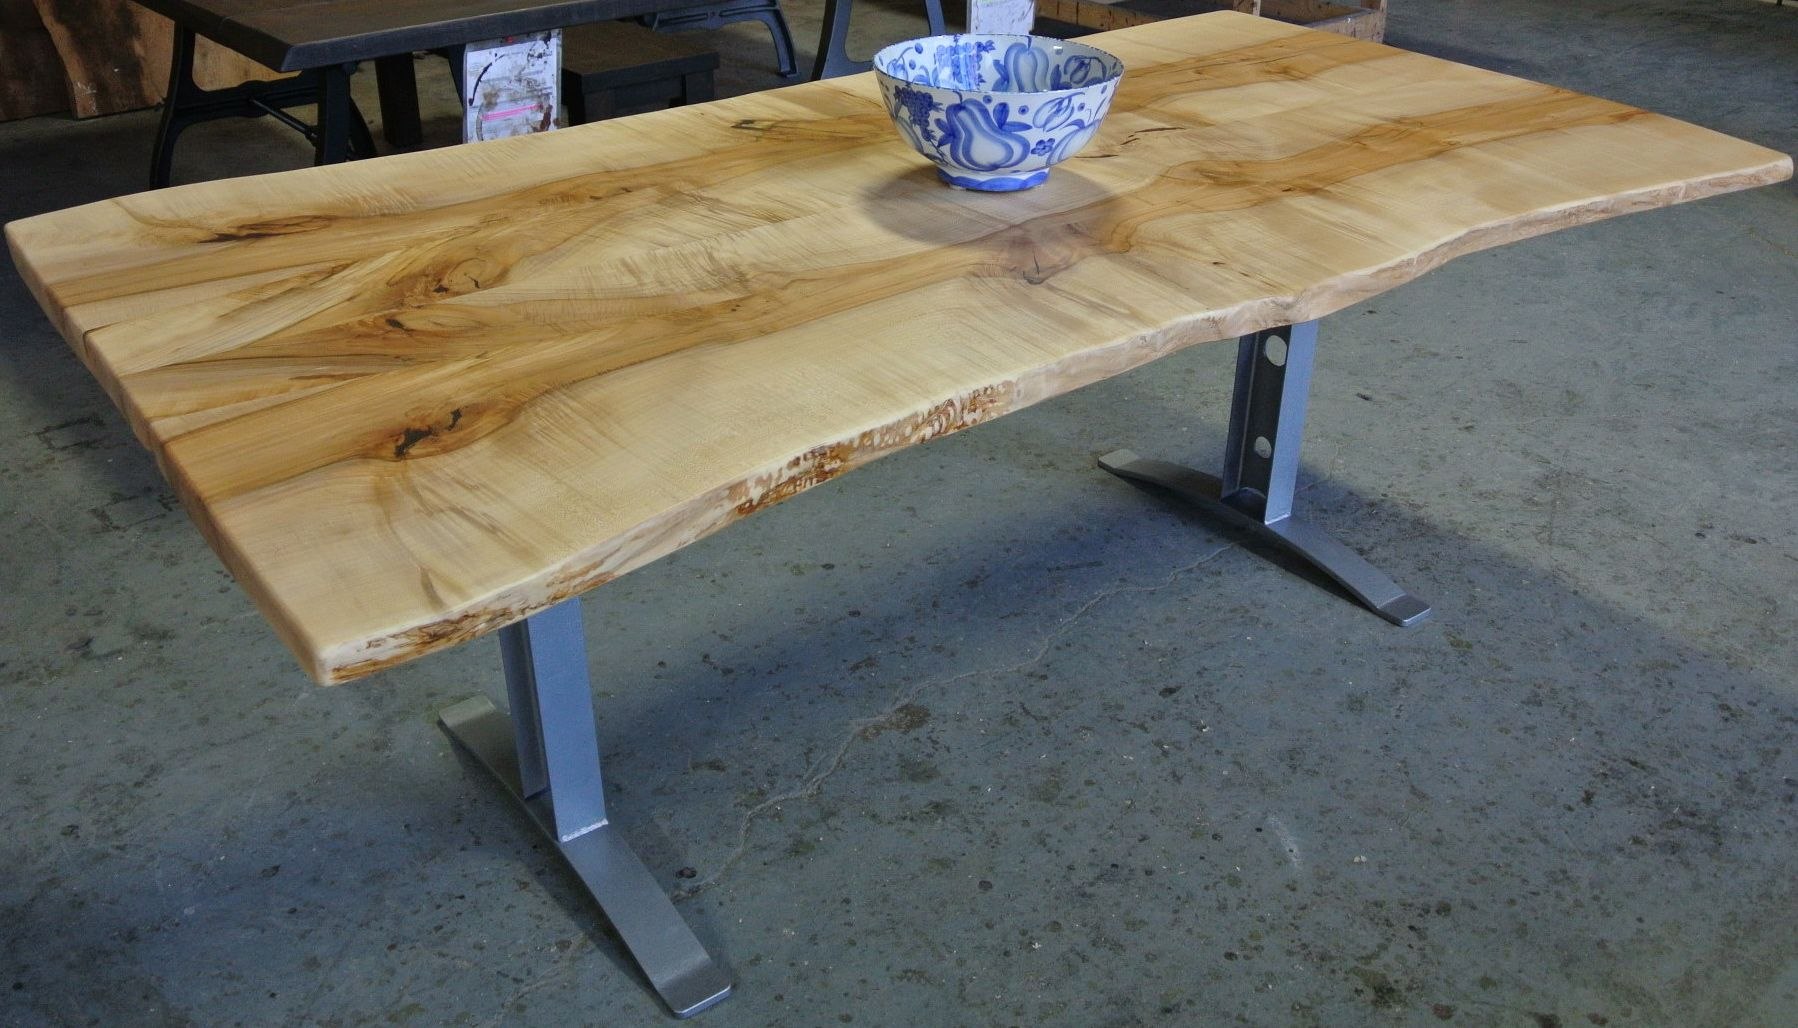 Charmant Maple Live Edge Dining Table Inspiration For Your Dining Room Tags: Maple  Live Edge Table, Maple Live Edge Furniture, Maple Live Edge Dining Table,  ...